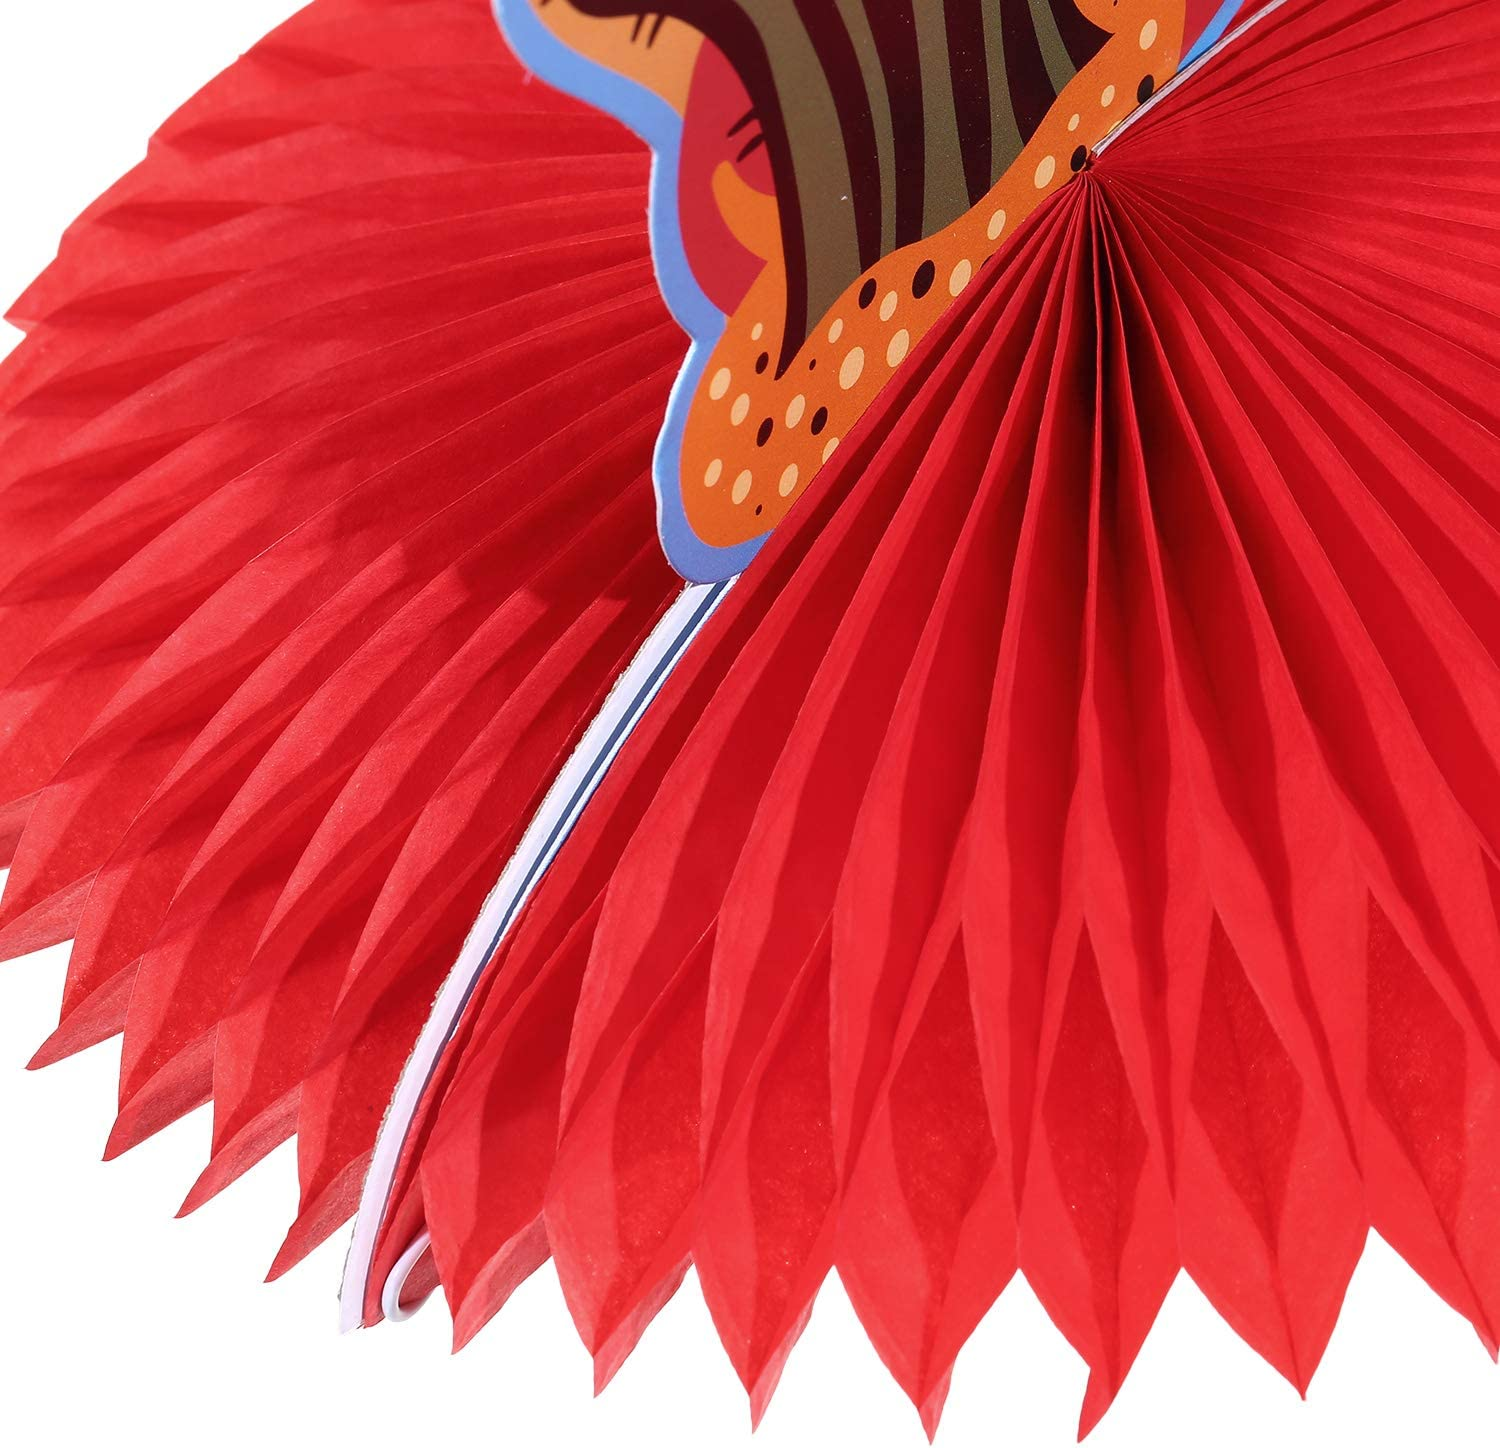 12 Pieces Mexican Table Centerpiece Cinco De Mayo Fiesta Table Decorations Colorful Honeycomb Paper Fan Centerpiece for Mexican Theme Party Supplies